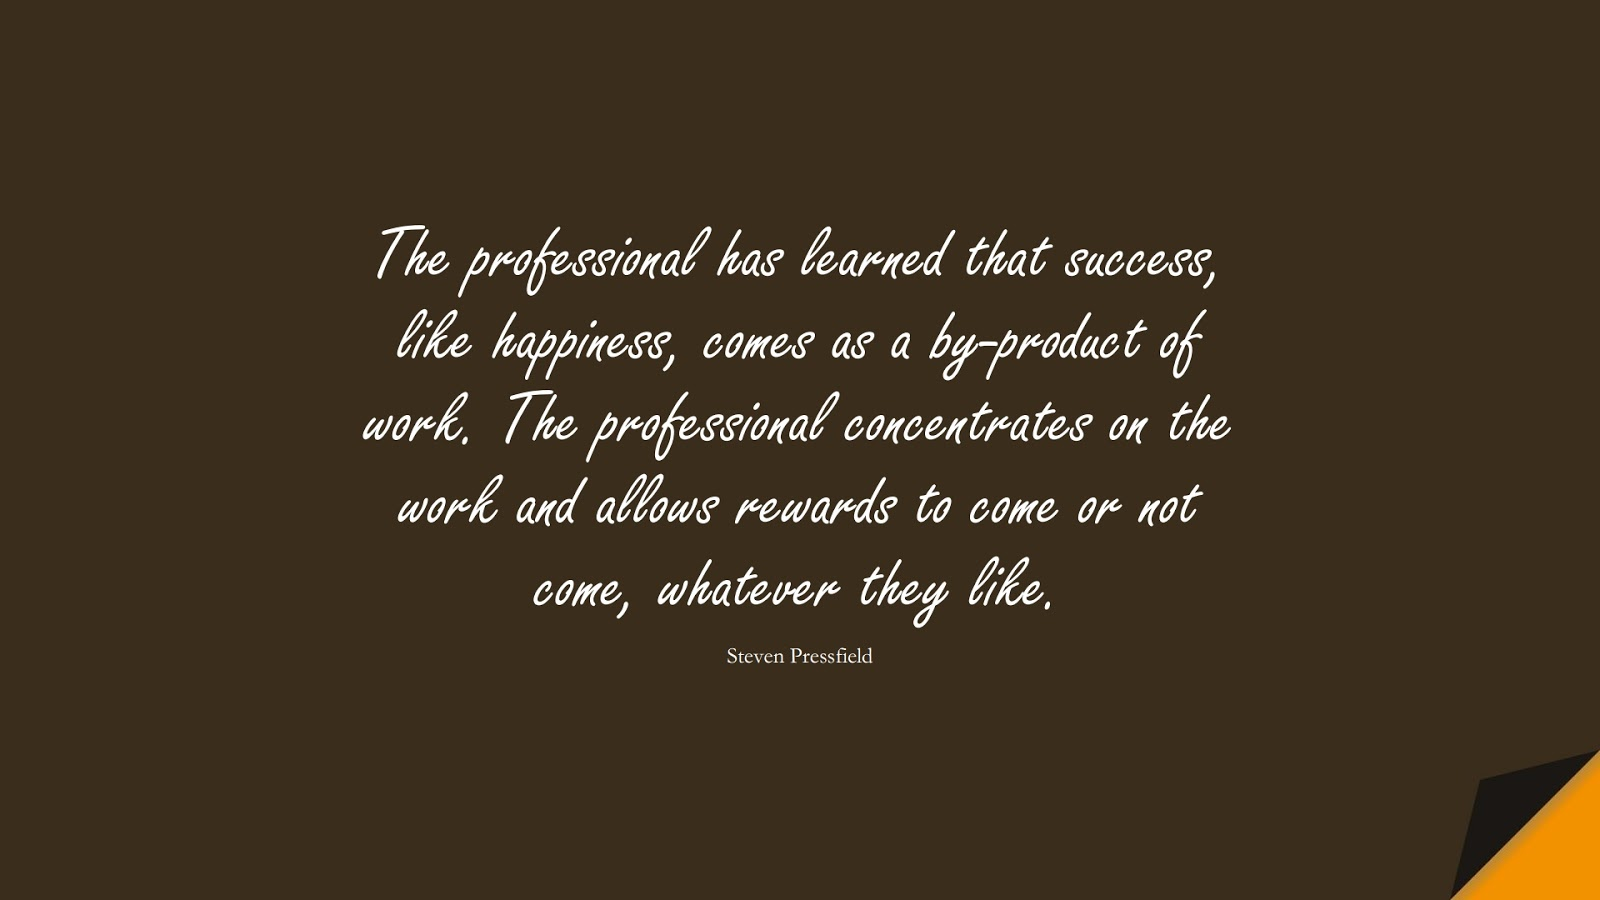 The professional has learned that success, like happiness, comes as a by-product of work. The professional concentrates on the work and allows rewards to come or not come, whatever they like. (Steven Pressfield);  #SuccessQuotes